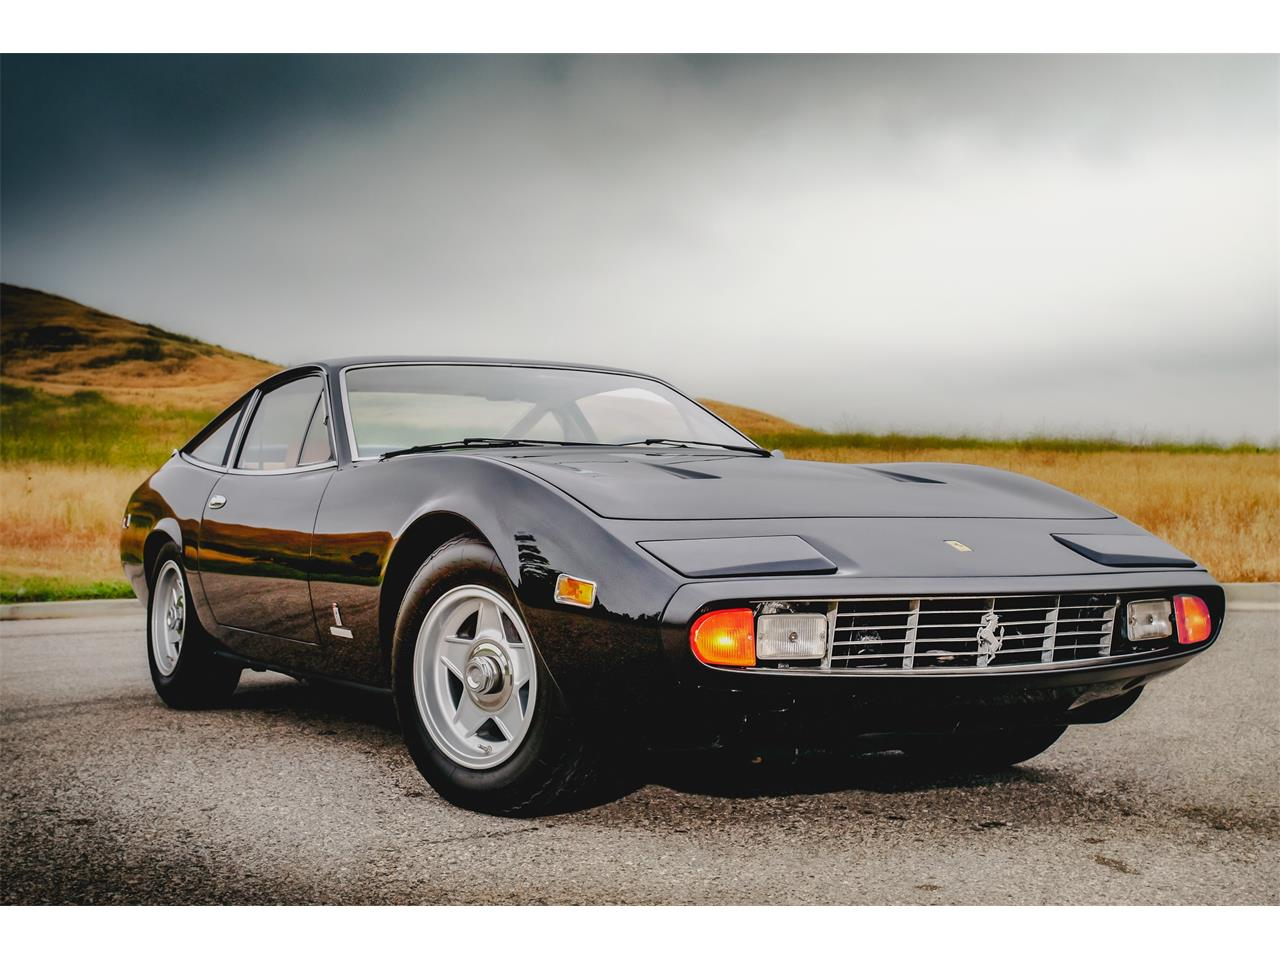 Large Picture of Classic '72 365 GT4 located in Irvine California - $247,500.00 Offered by Radwan Classic Cars - Q5SJ